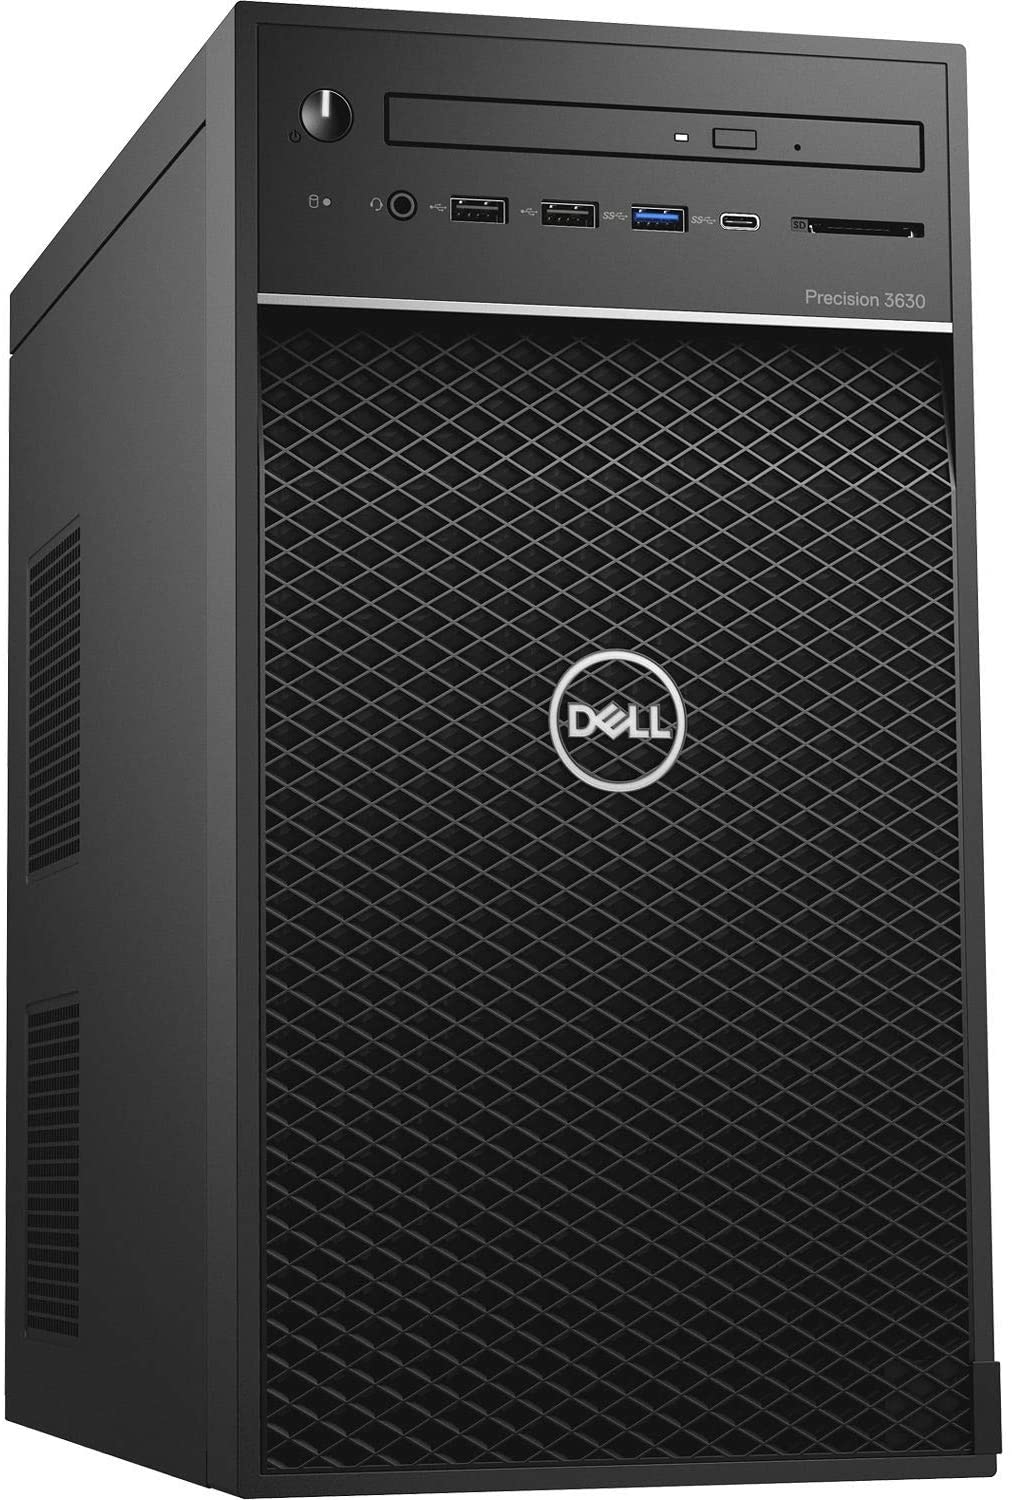 Dell Precision 3630 Workstation, Intel 8th Gen i7-8700 6-Core 3.2GHz (Up to 4.60GHz), 16GB DDR4-2666MHz Memory, 512GB NVMe PCIe SSD, NVIDIA Quadro P600 2GB GDDR5, Windows 10 Pro